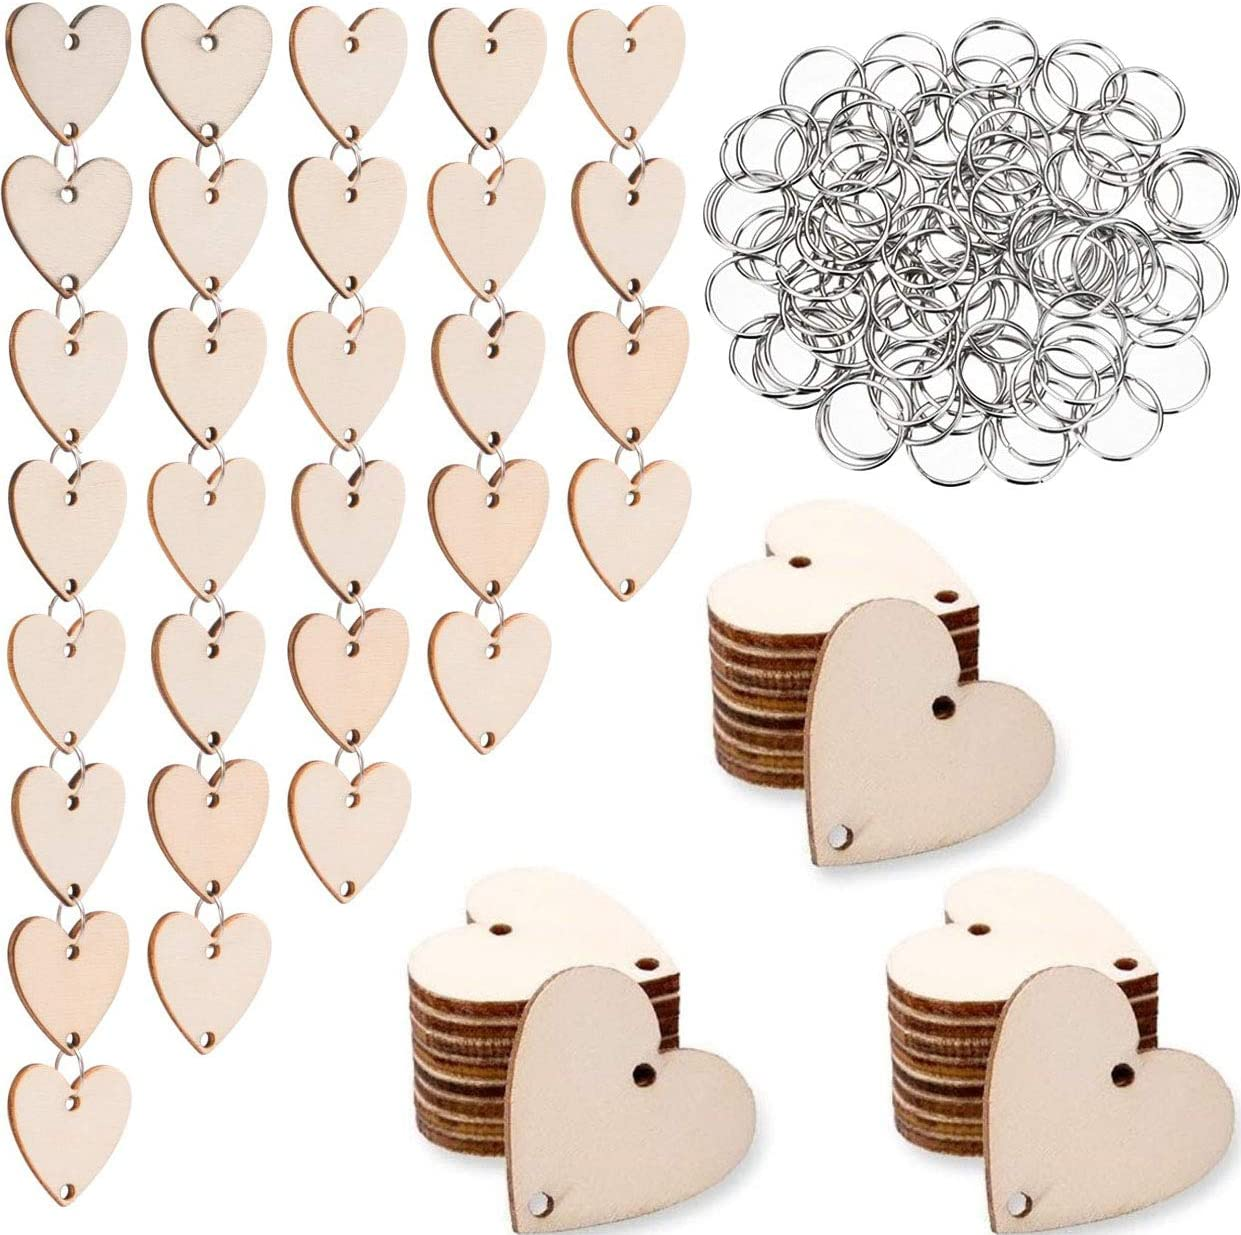 100 Pieces Round Wooden Discs with Holes Birthday Board Tags and 100 Pieces